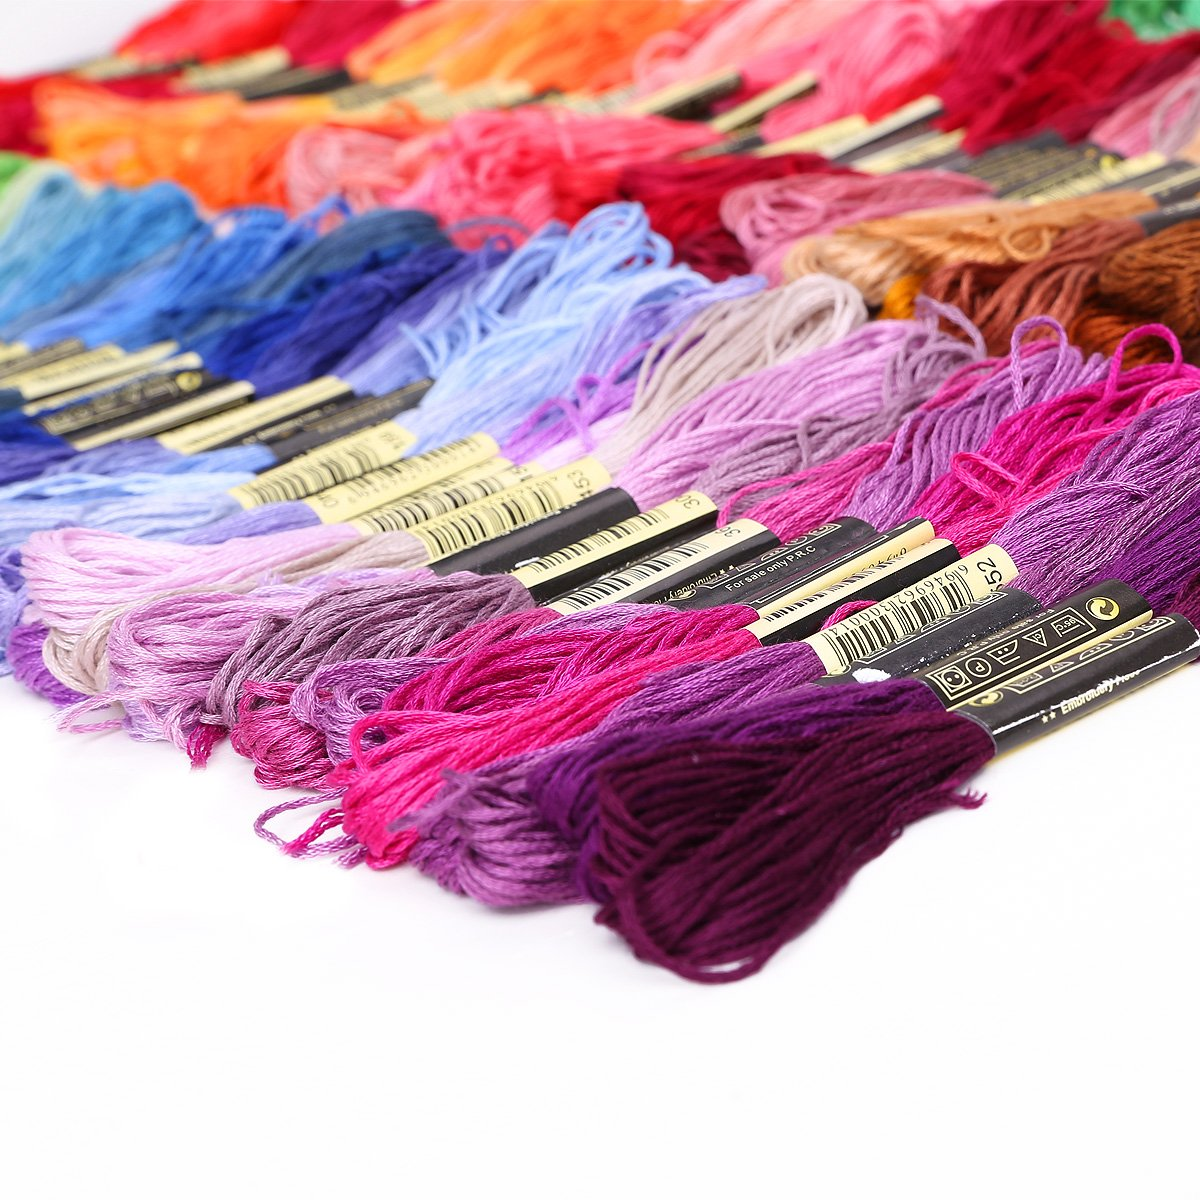 ... of multicolored yarn for cross stitch embroidery Crocheting SP eBay